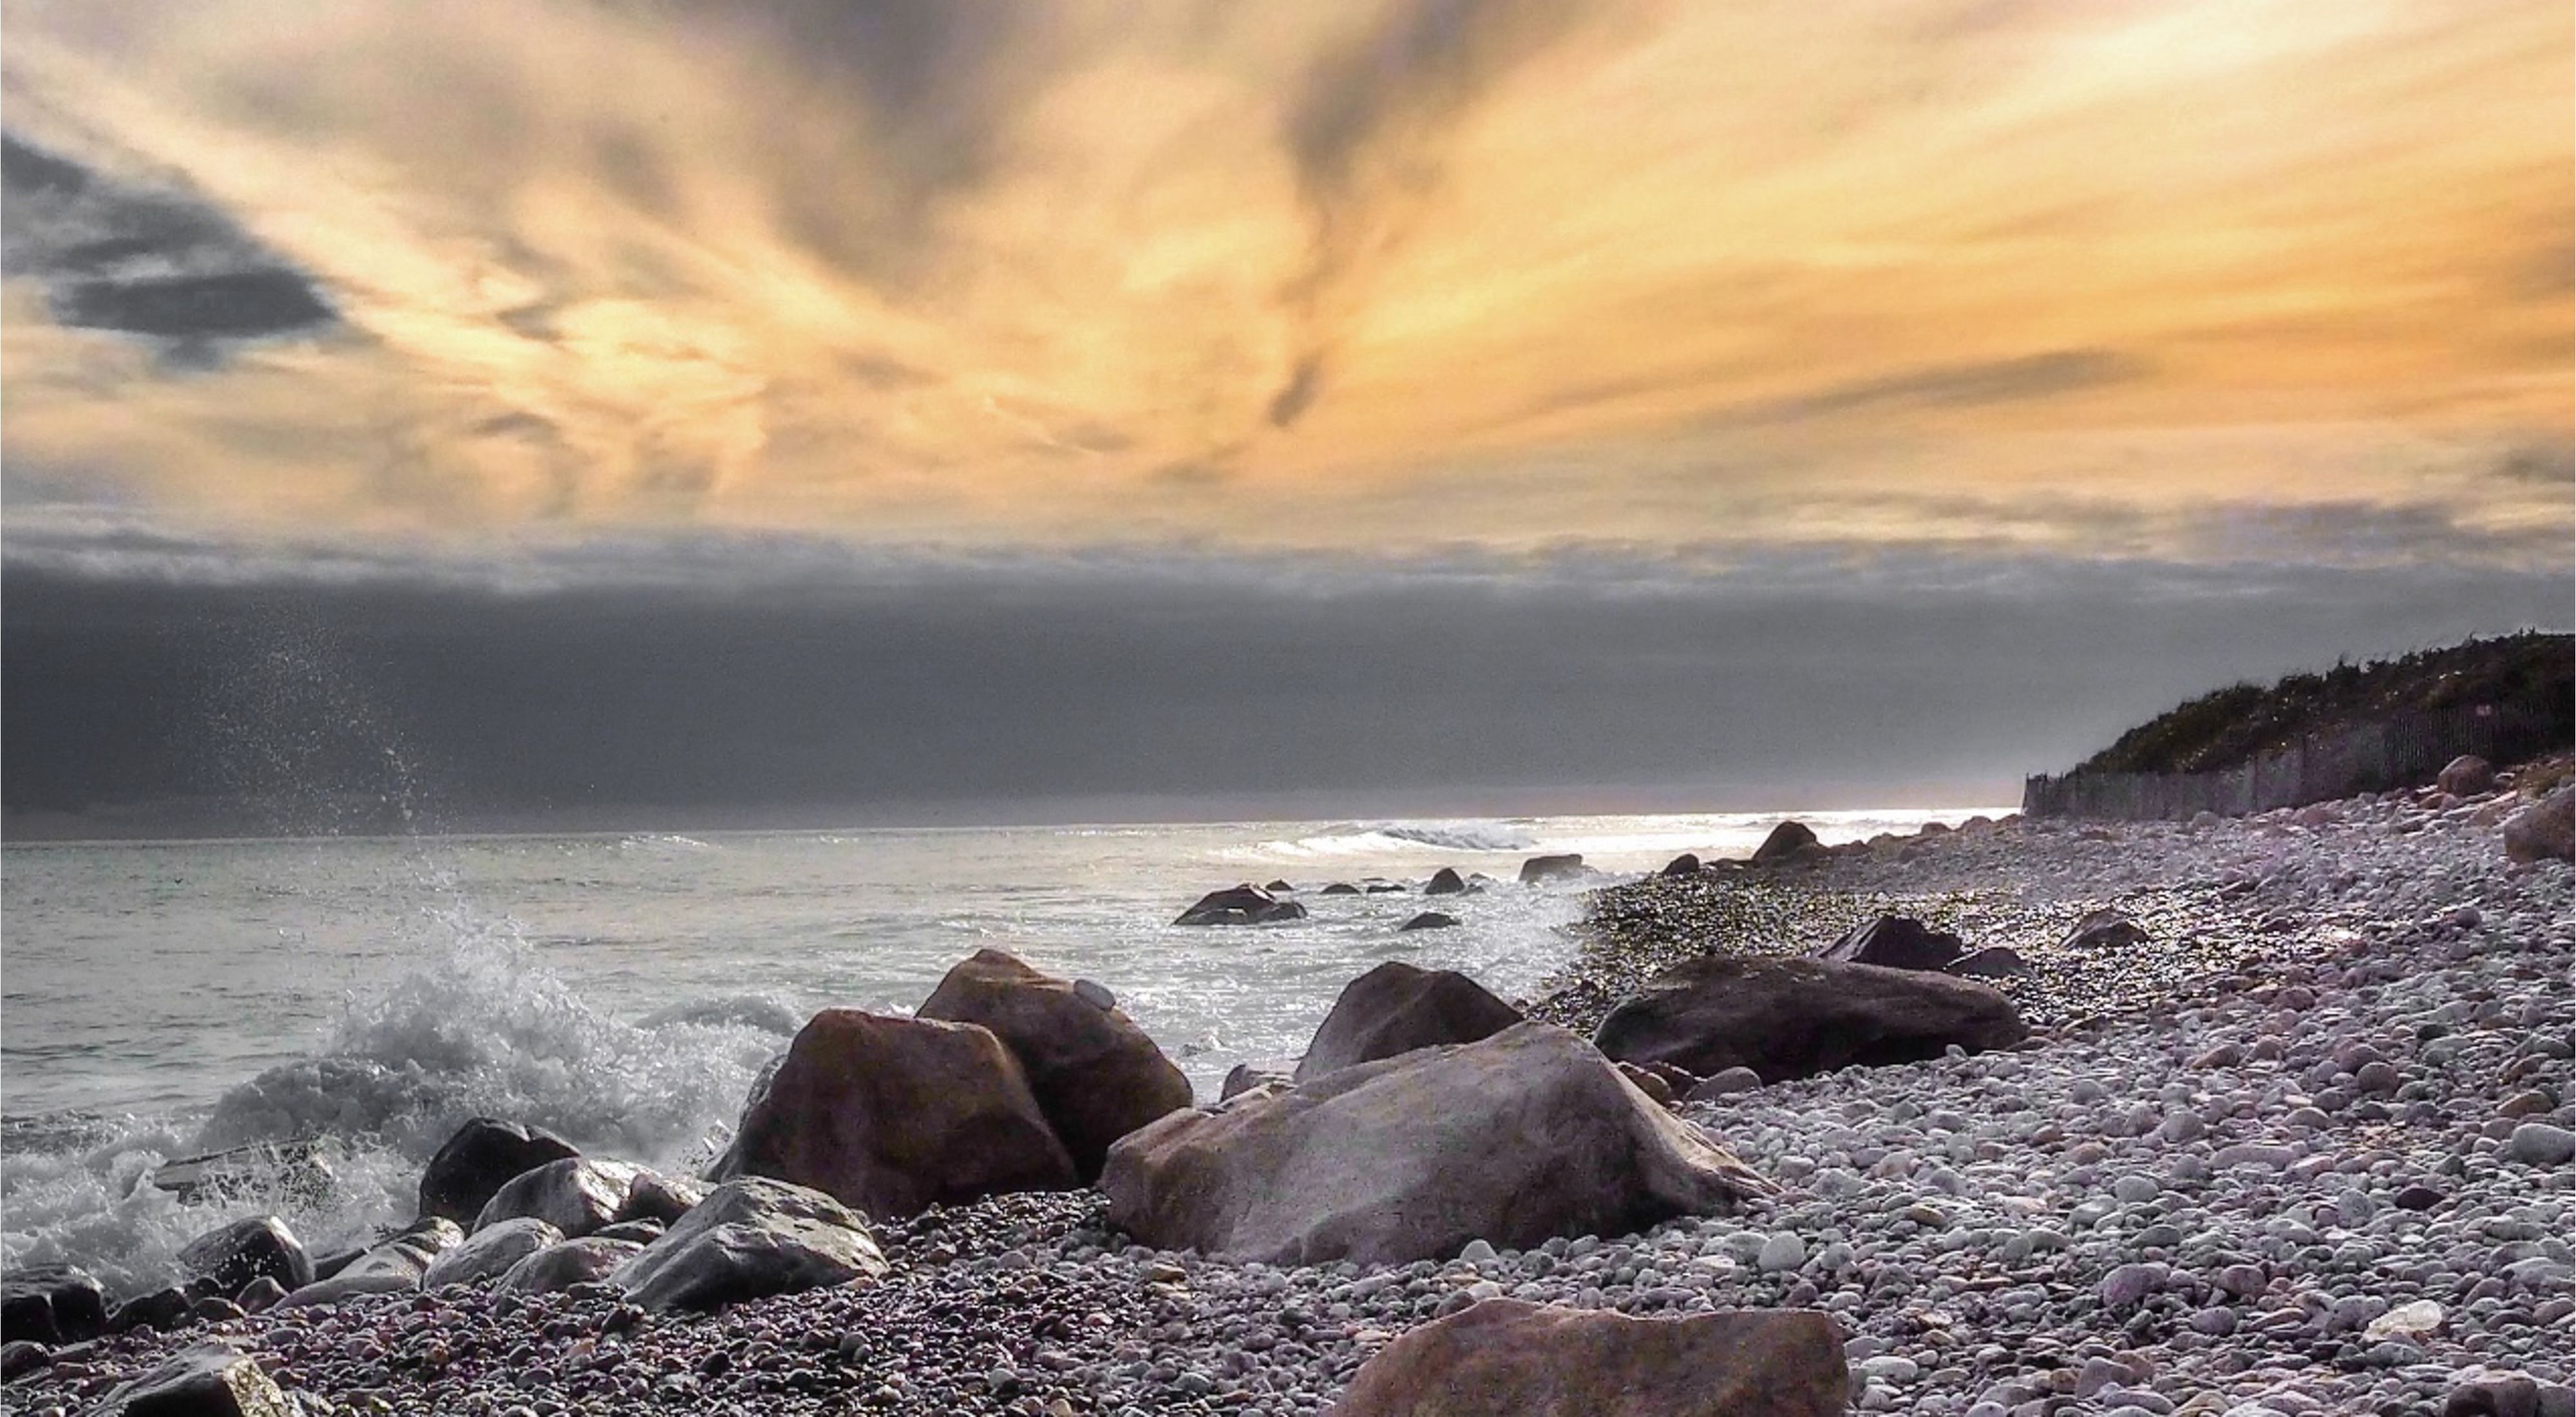 A beach filled with various rocks on the right hand side with small ocean waves breaking on the shoreline on the left hand side, with a yellow sunset skyline in the background.